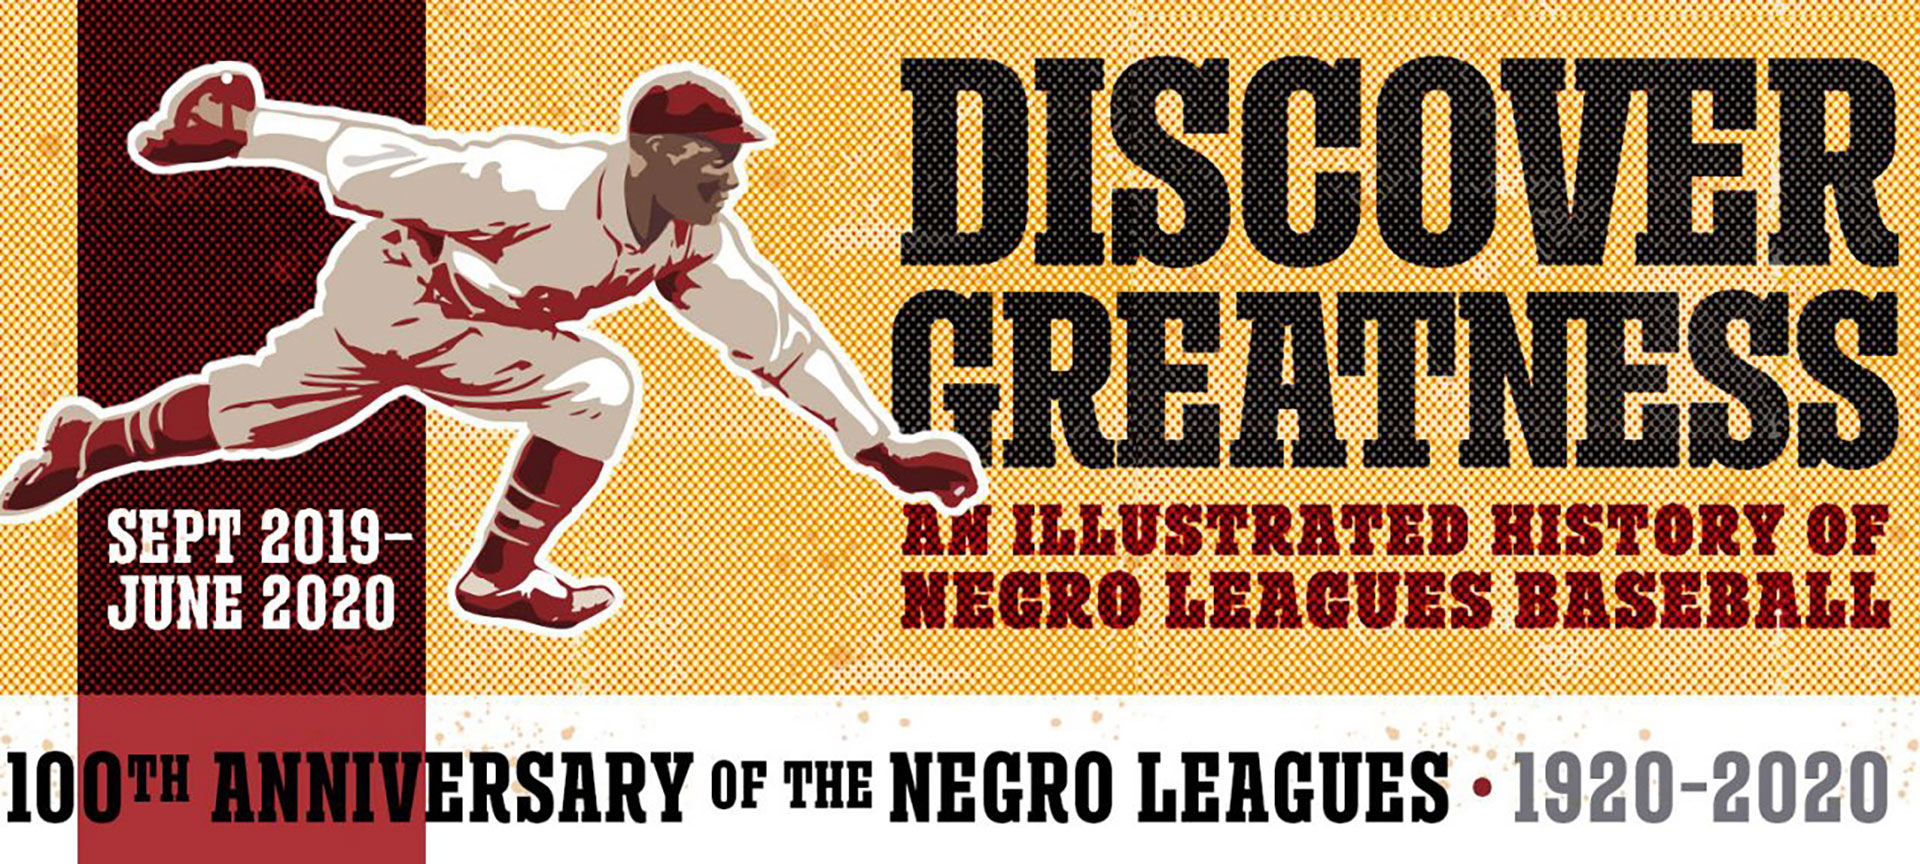 Banner for Discover Greatness exhibition